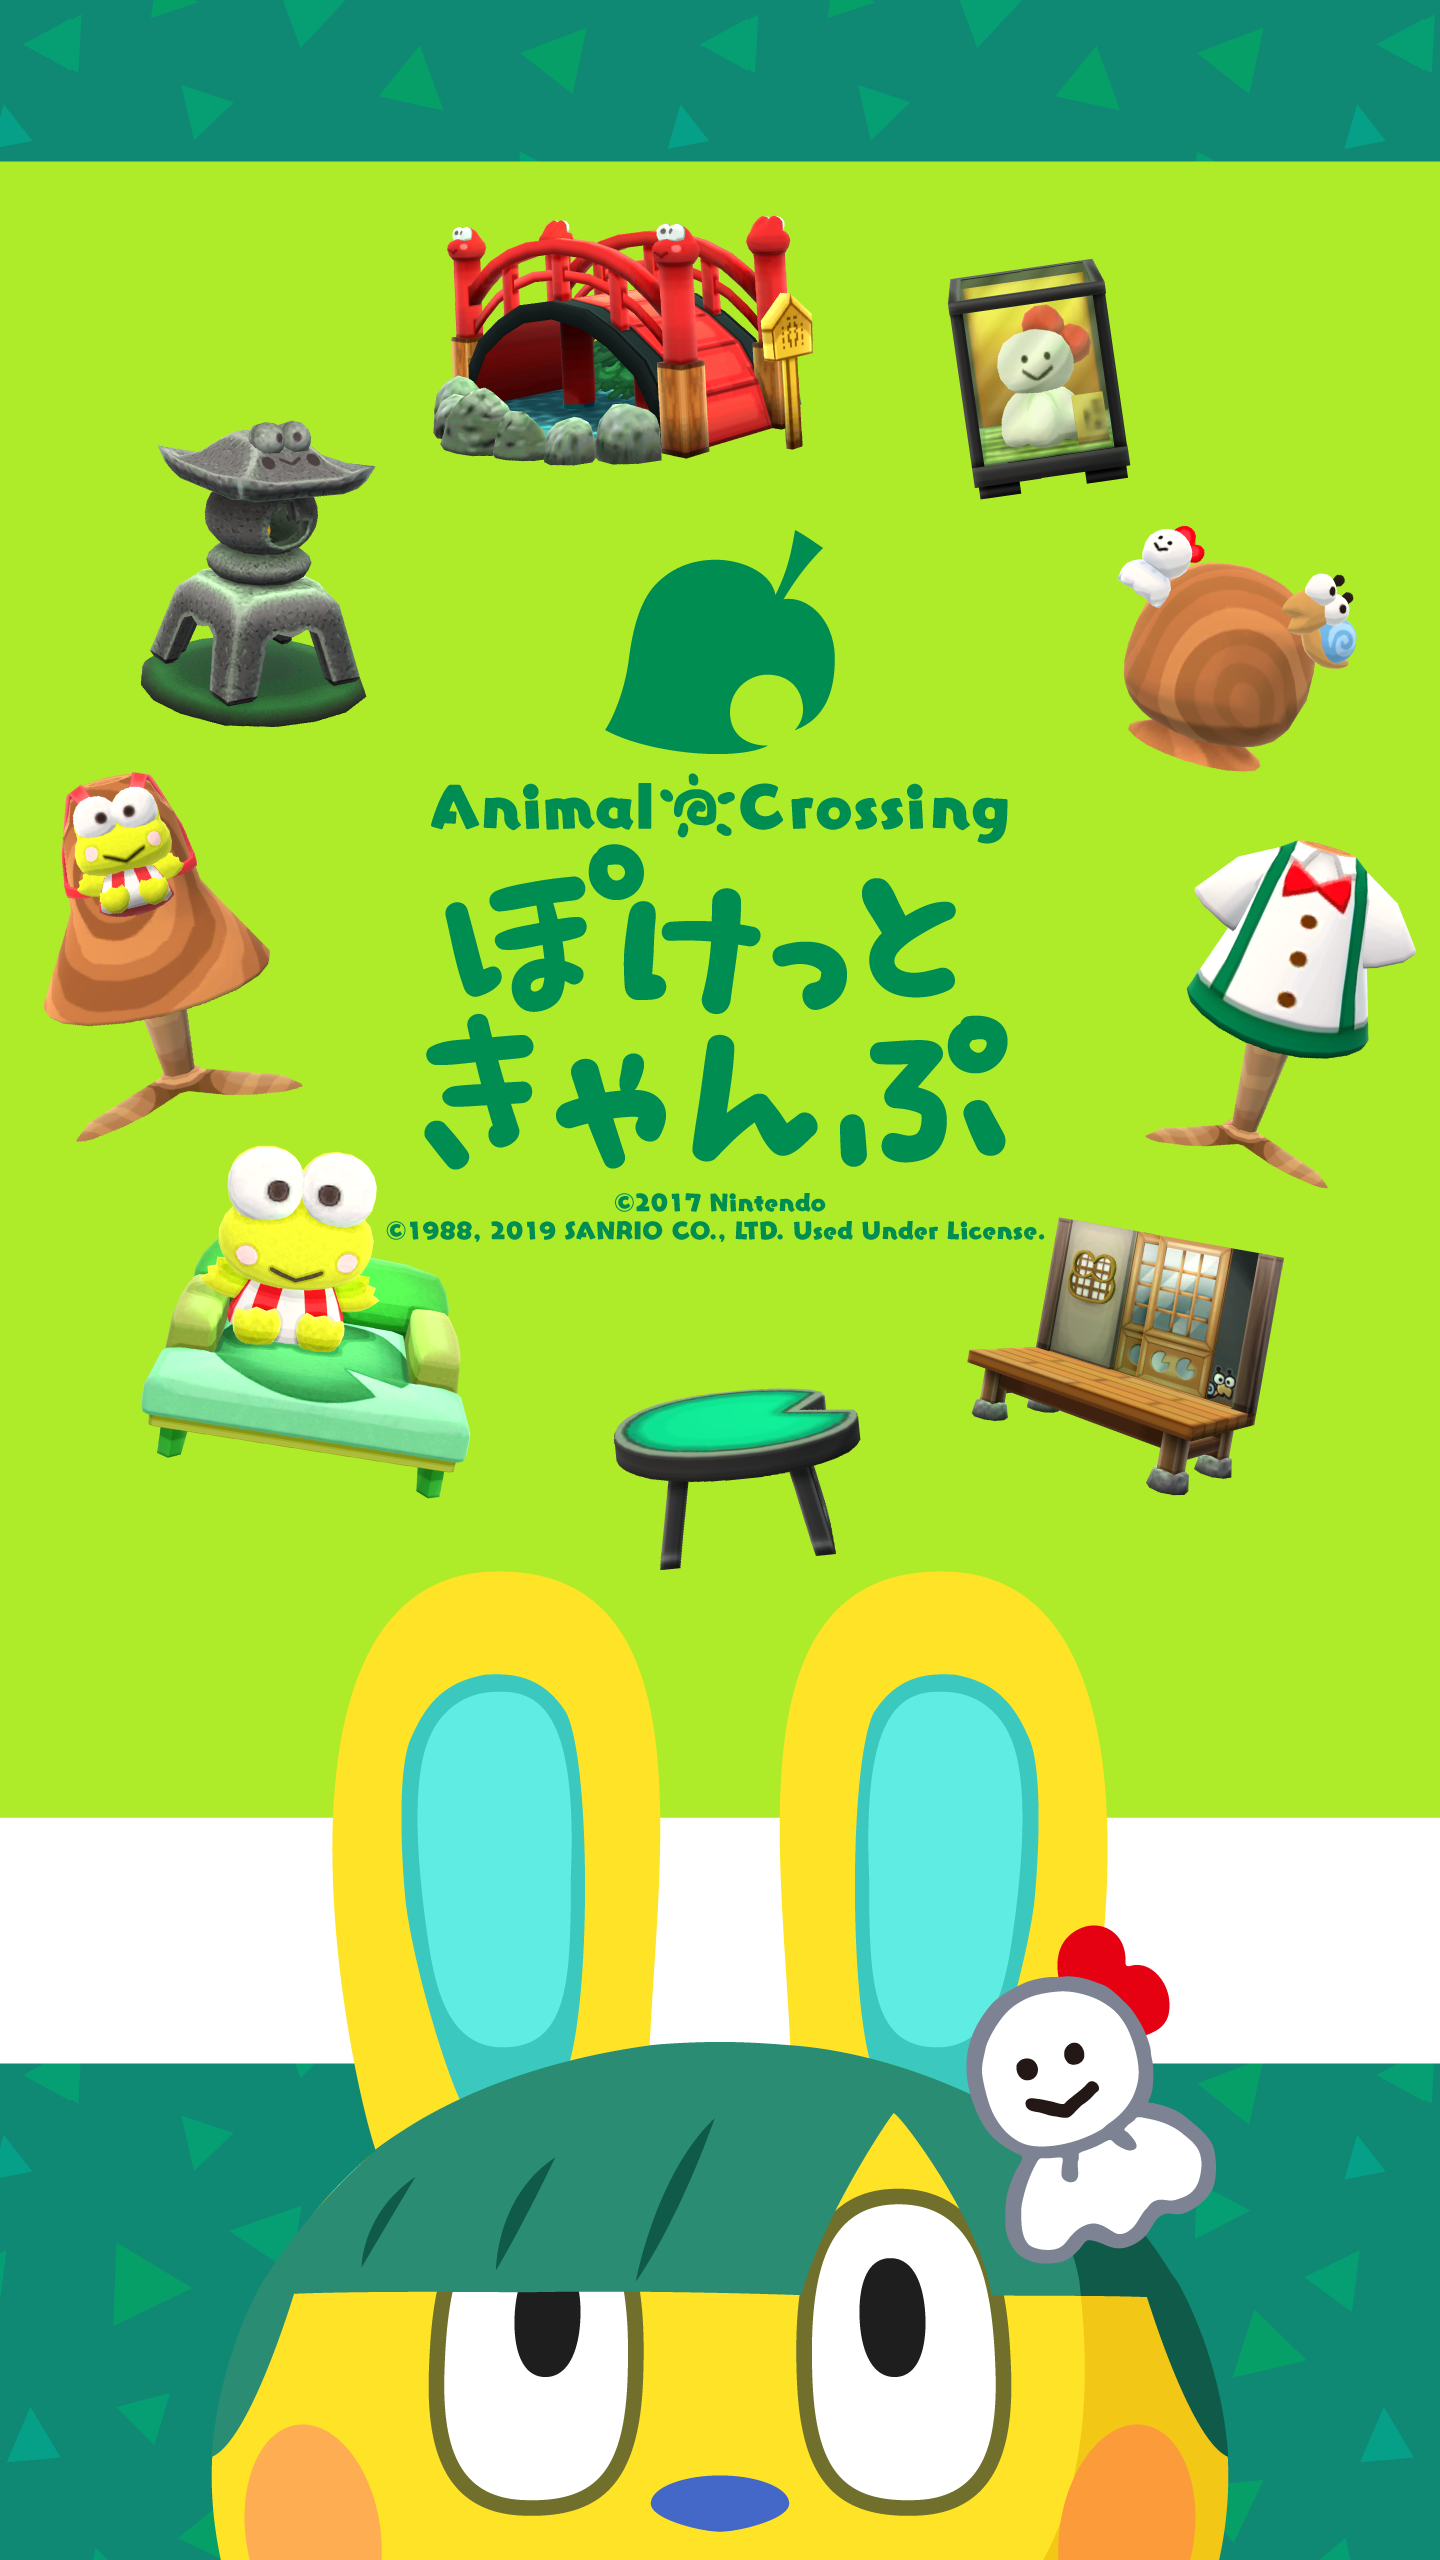 Wallpaper - Animal Crossing Pocket Camp x Sanrio Characters Collection